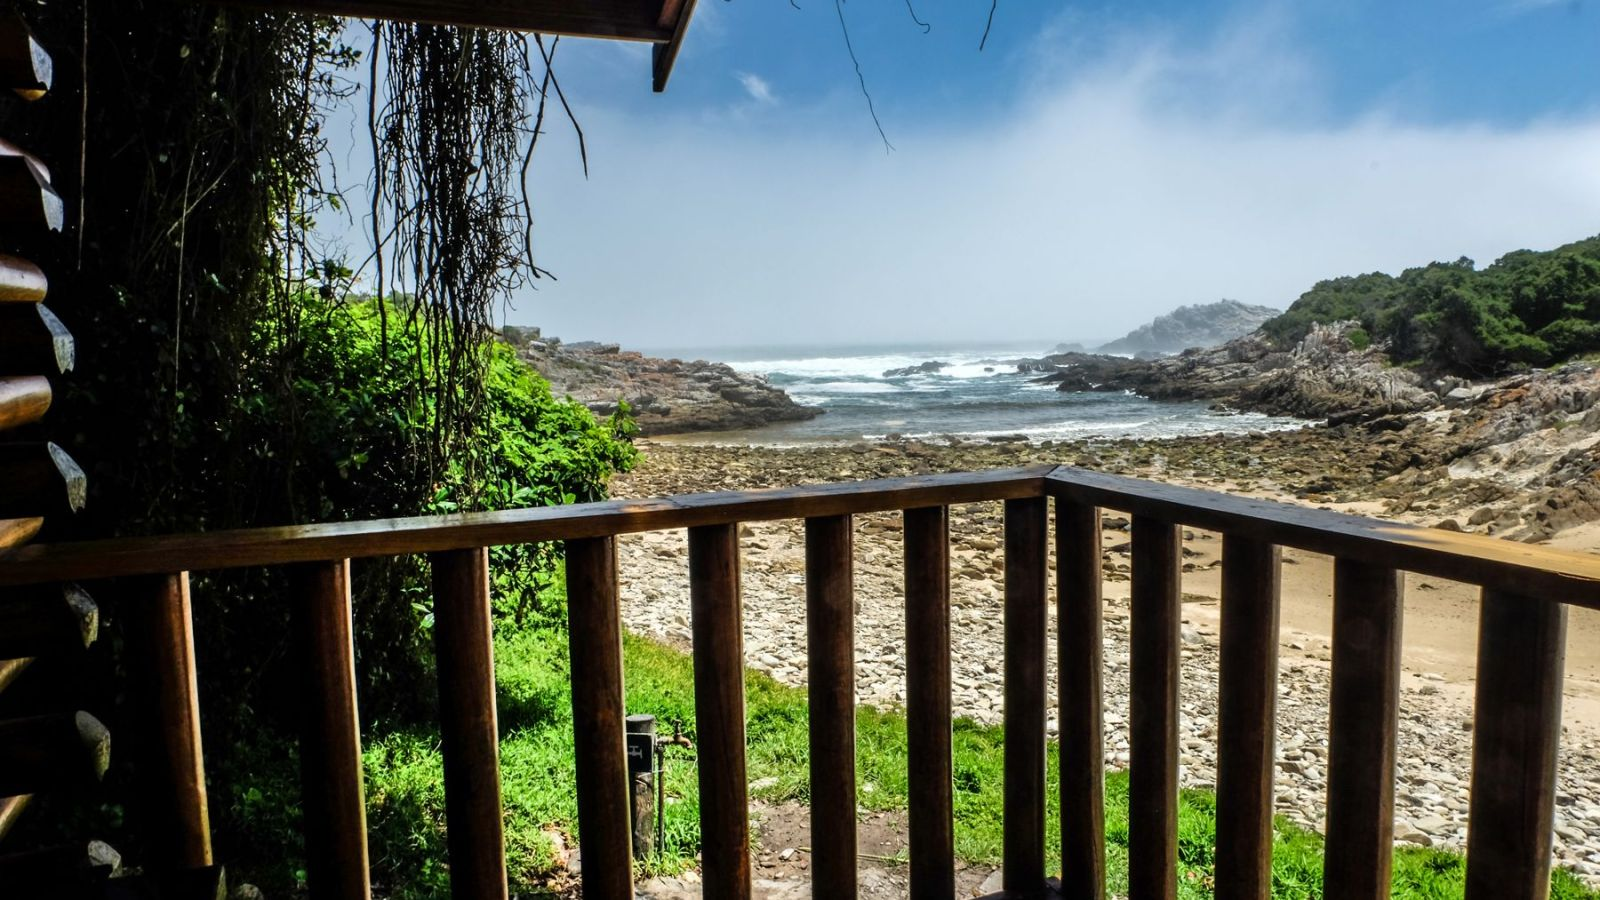 a photo showing the patio of a overnight hut and the beach along the otter trail.